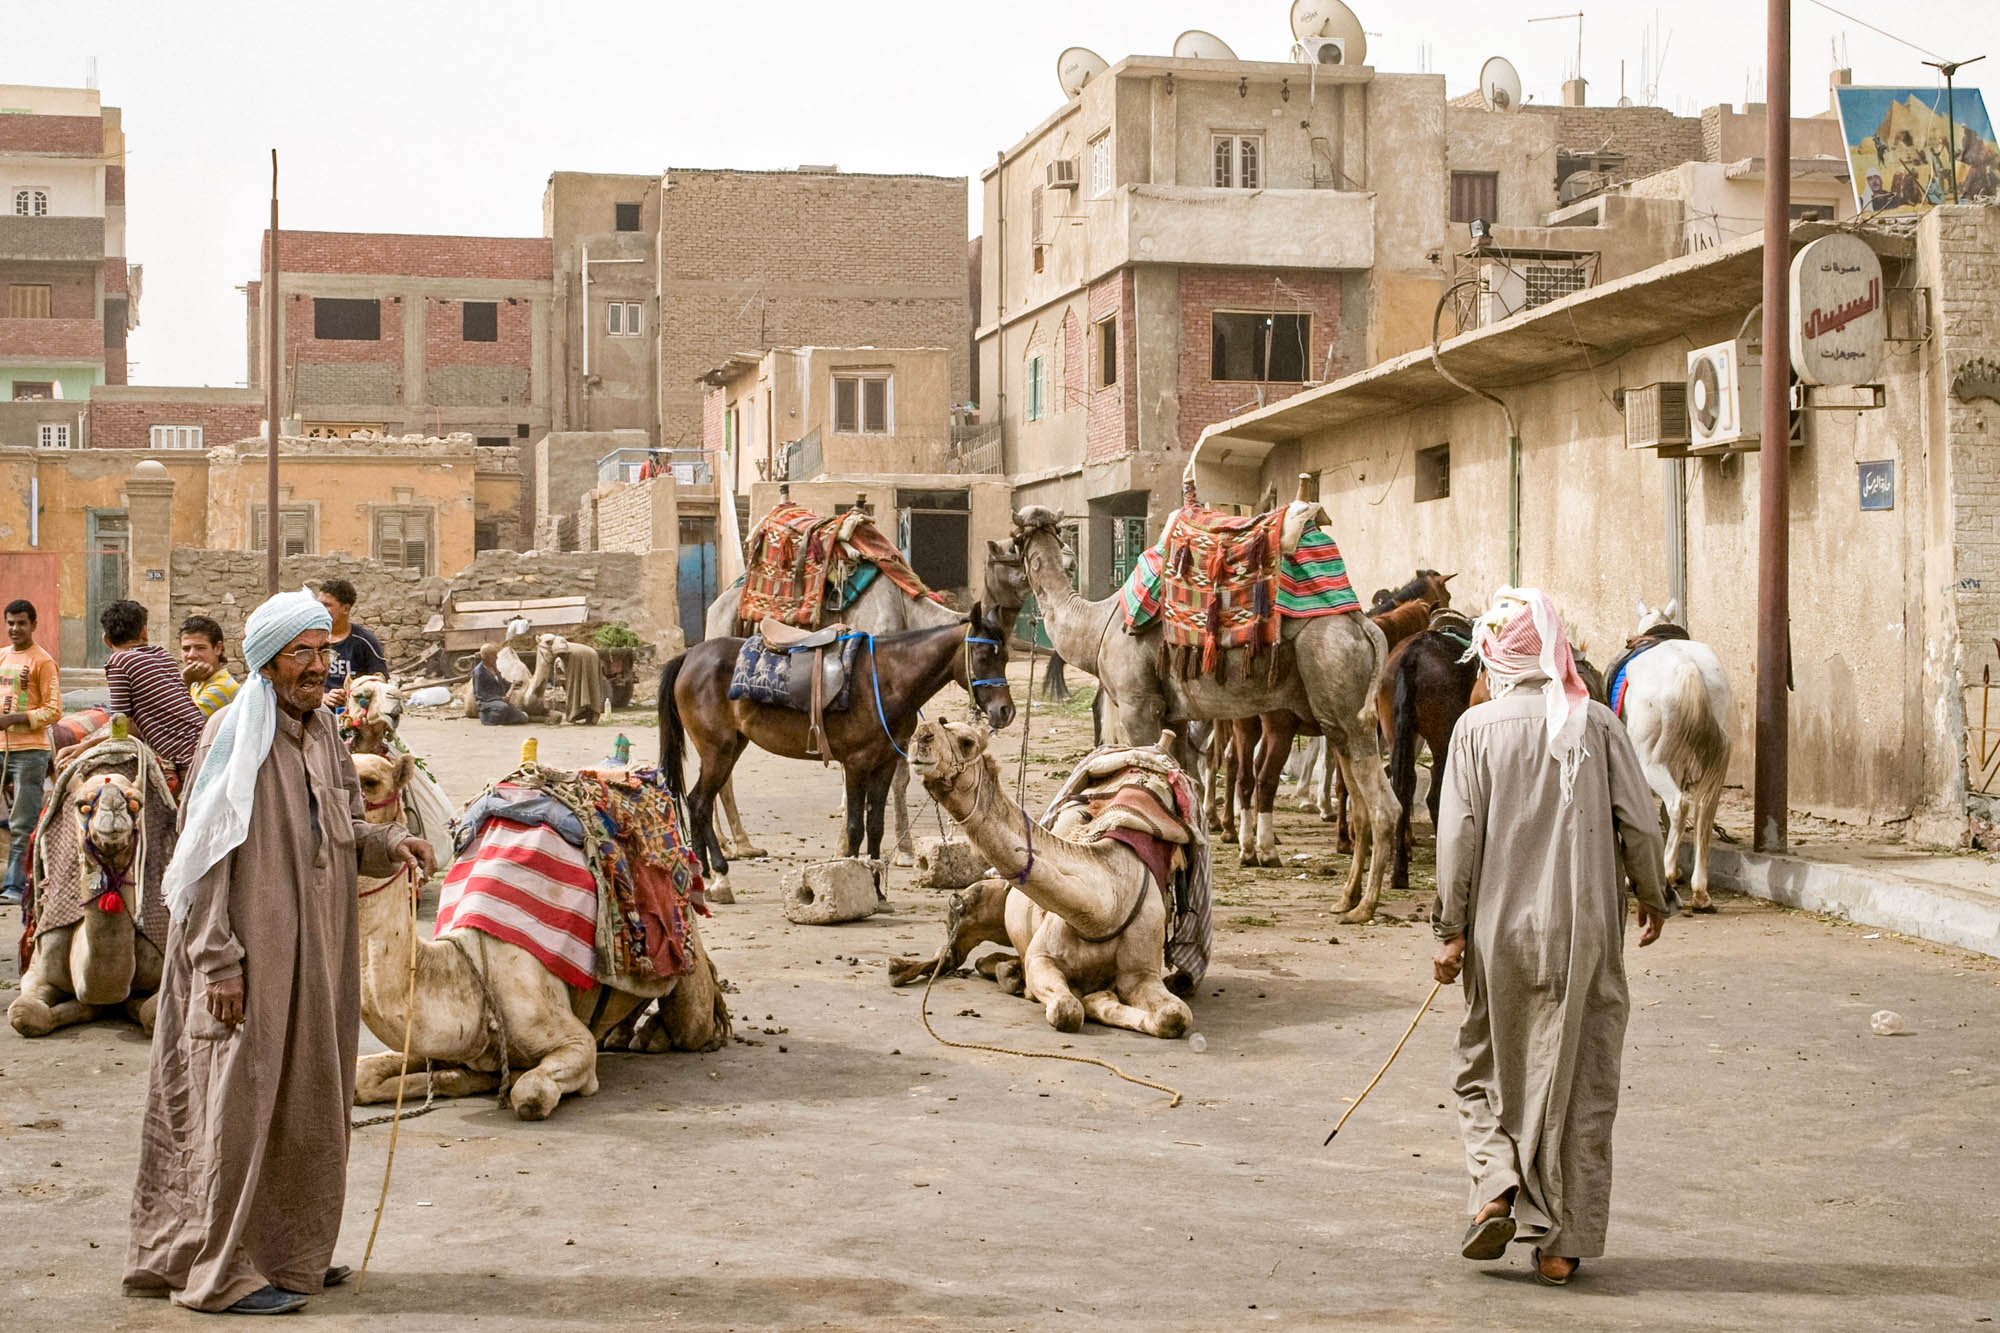 tour guides attempt to entice visitors towards a camel ride in Giza, Egypt